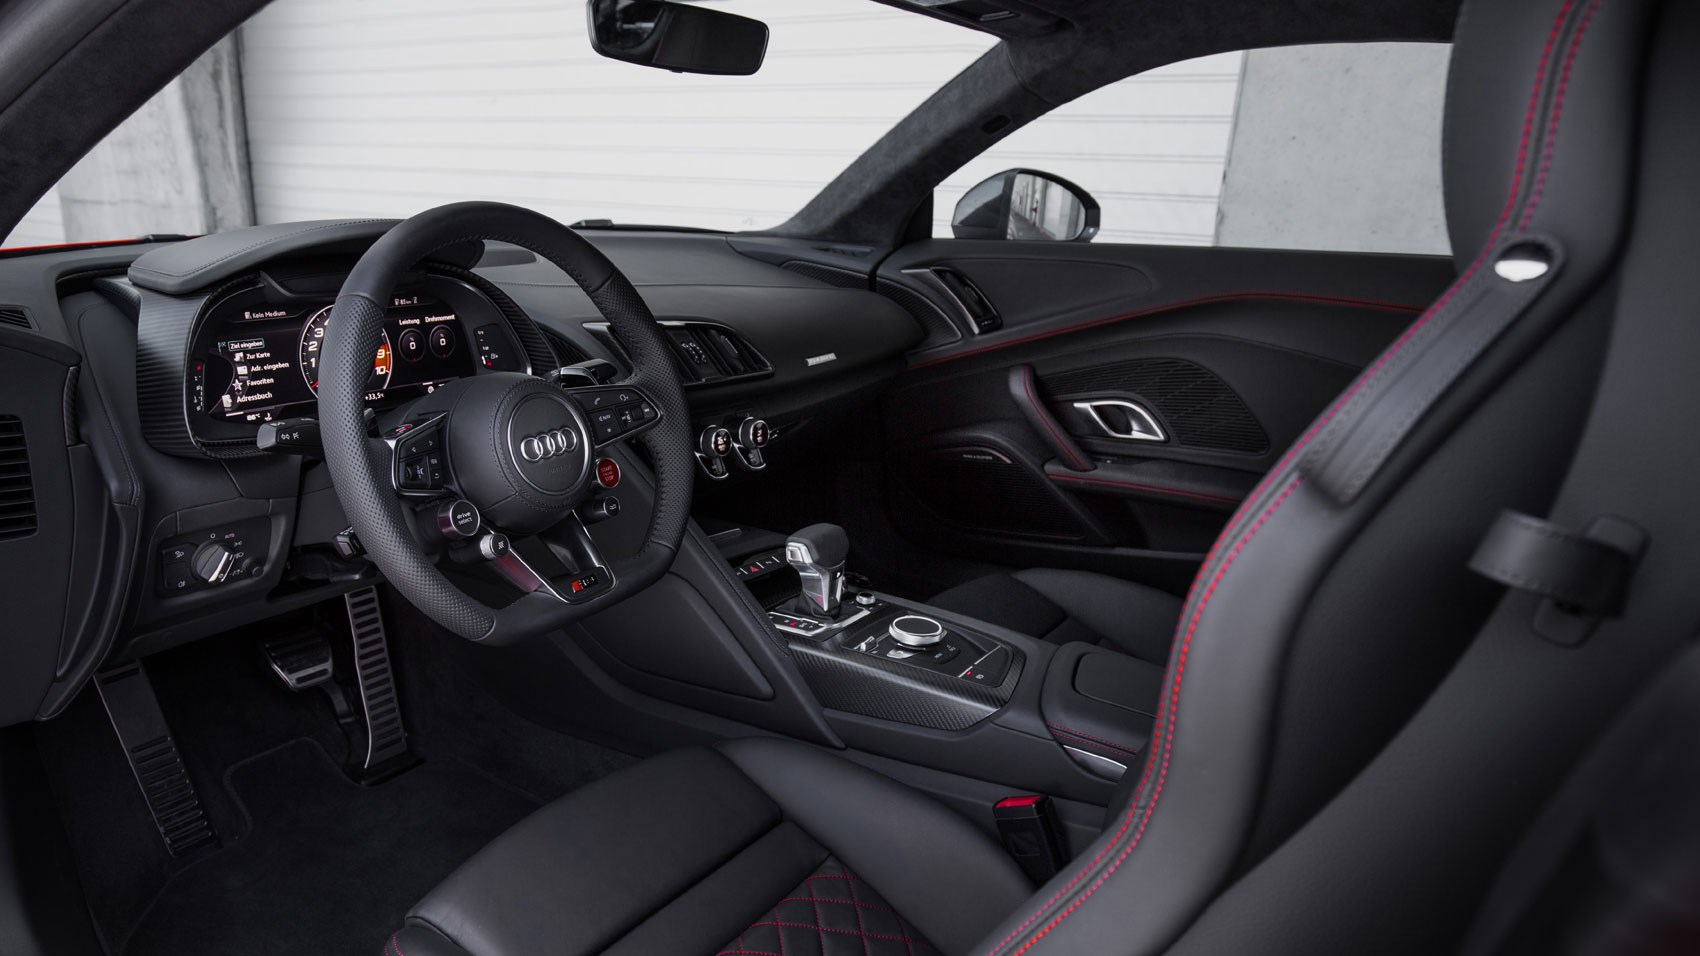 audi r8 2015 interior. 2015 audi r8 interior is more interesting on the driveru0027s side than passengeru0027s most major functions can be controlled from steering wheel